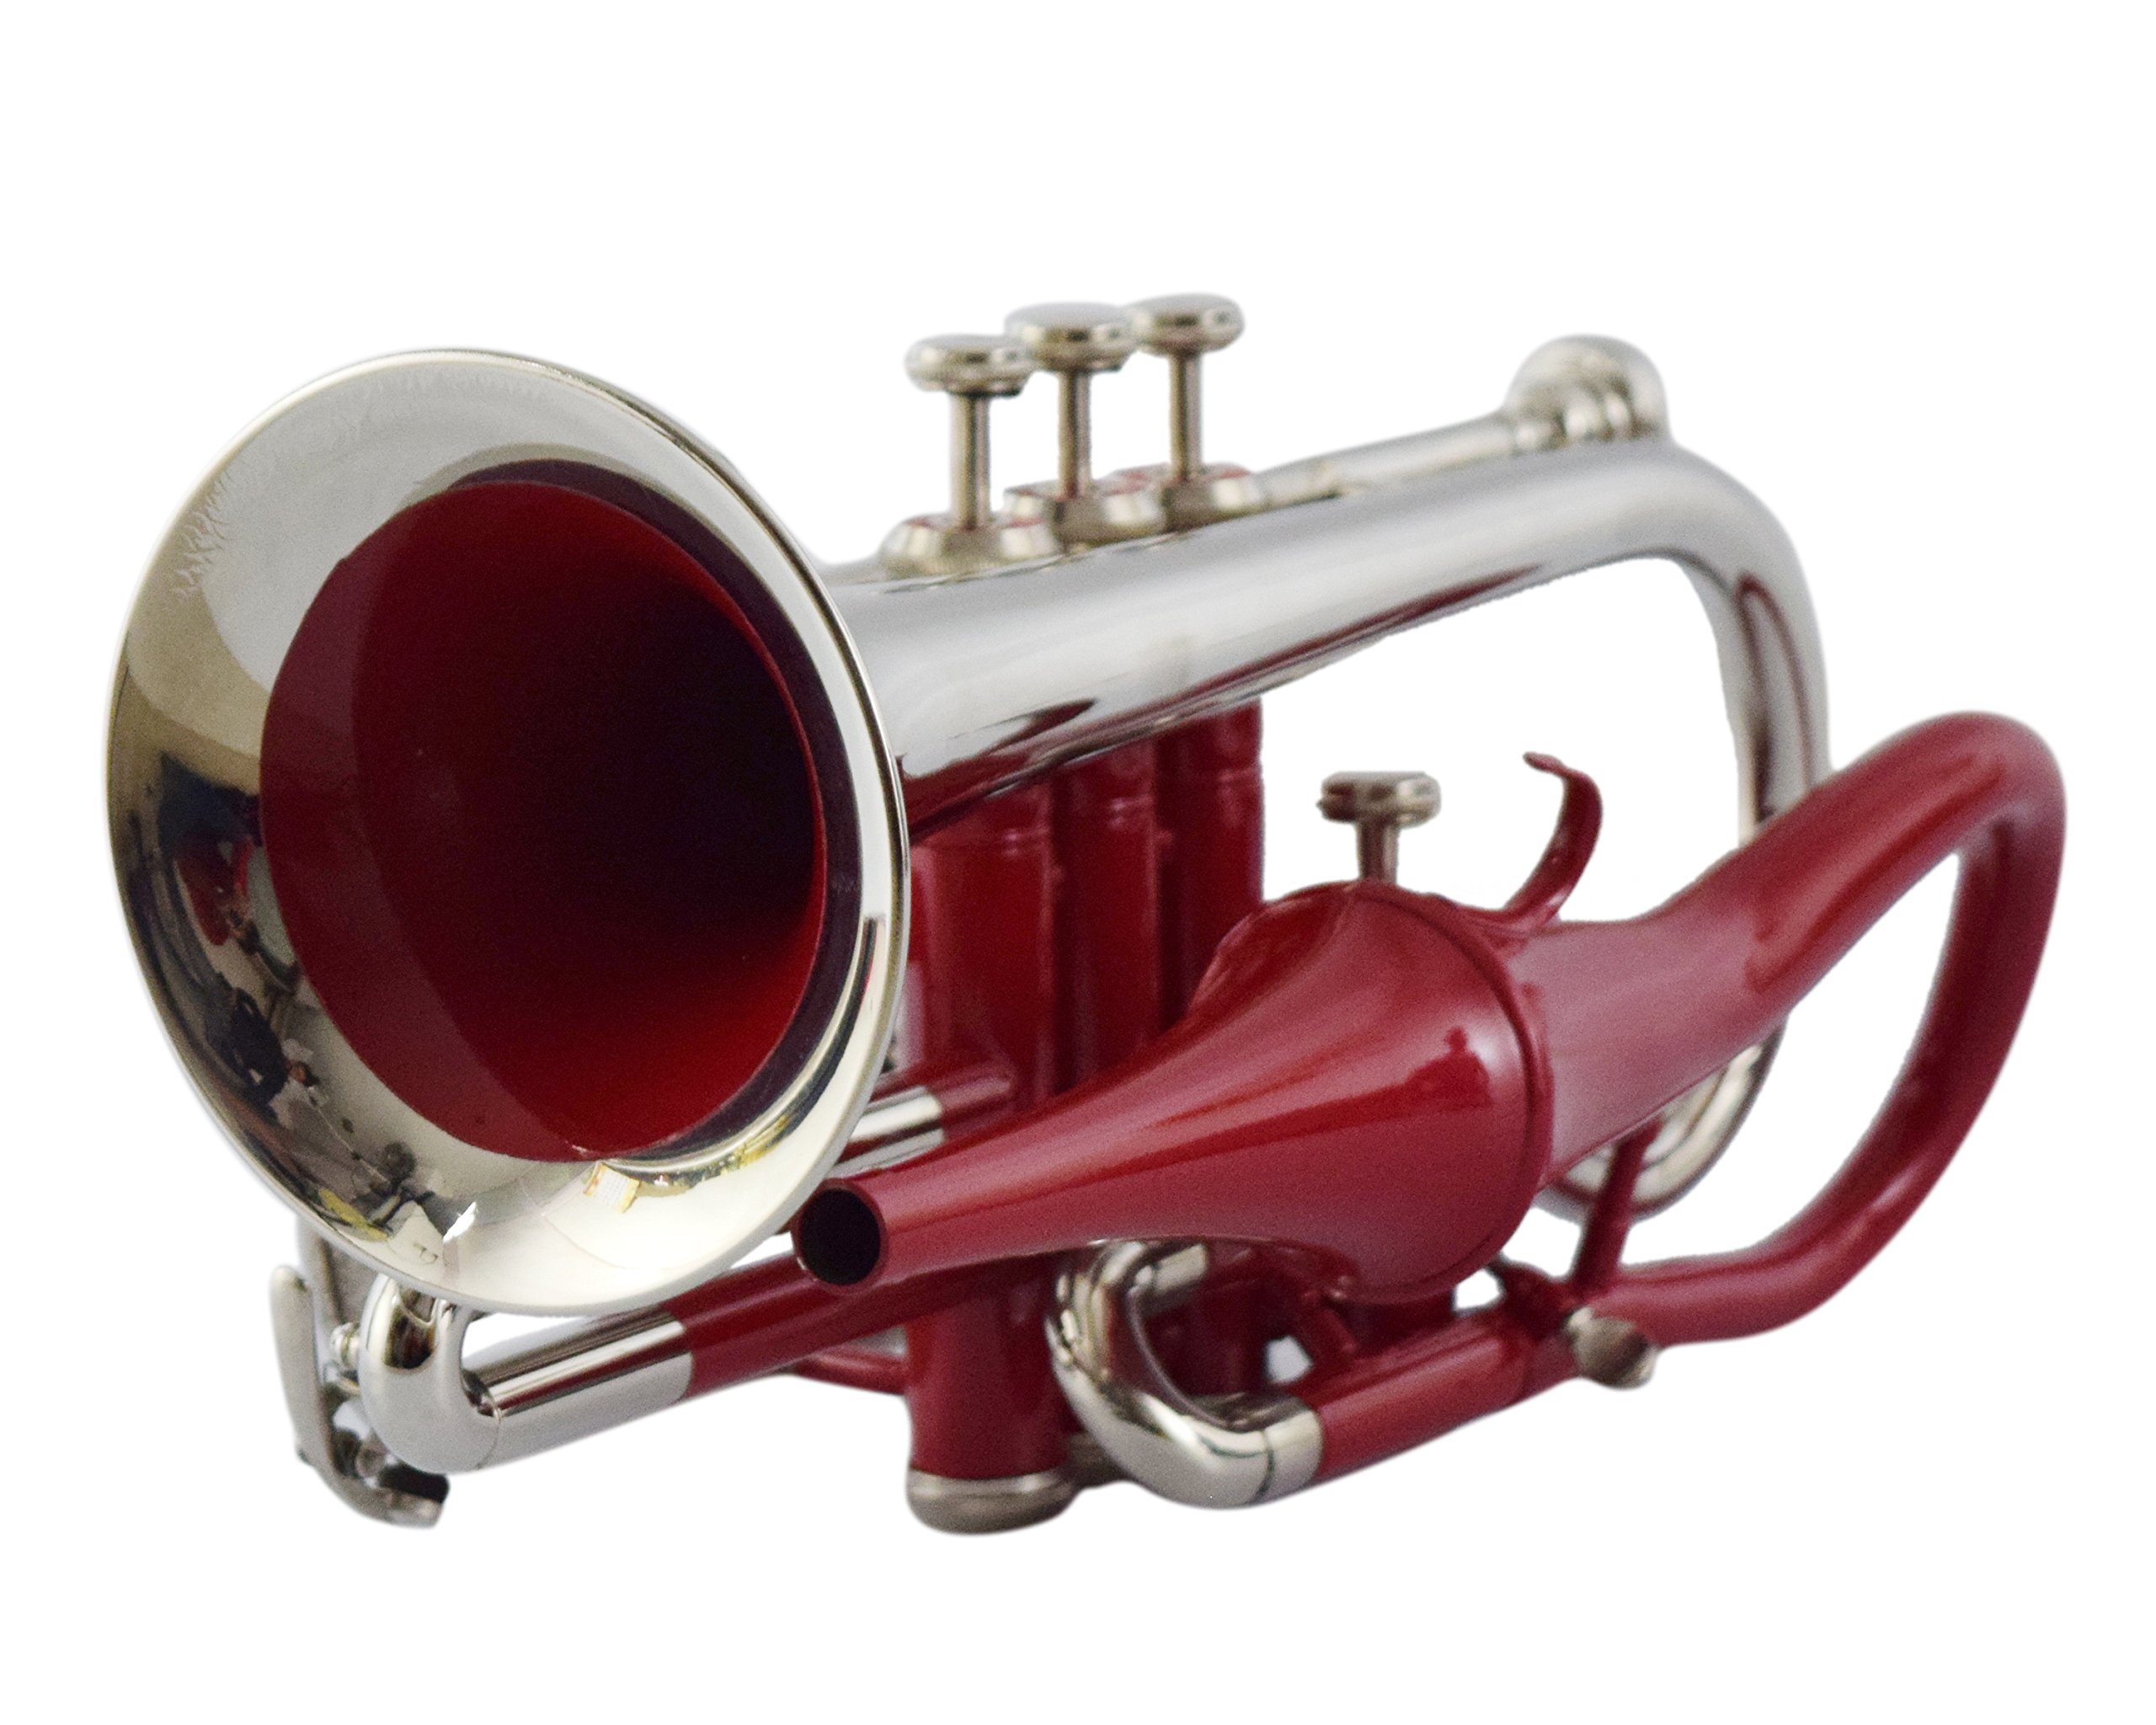 NASIR ALI BEAUTIFUL CORNET BP PITCH RED+ NICKEL COLORED WITH CASE AND MP by NASIR ALI (Image #1)